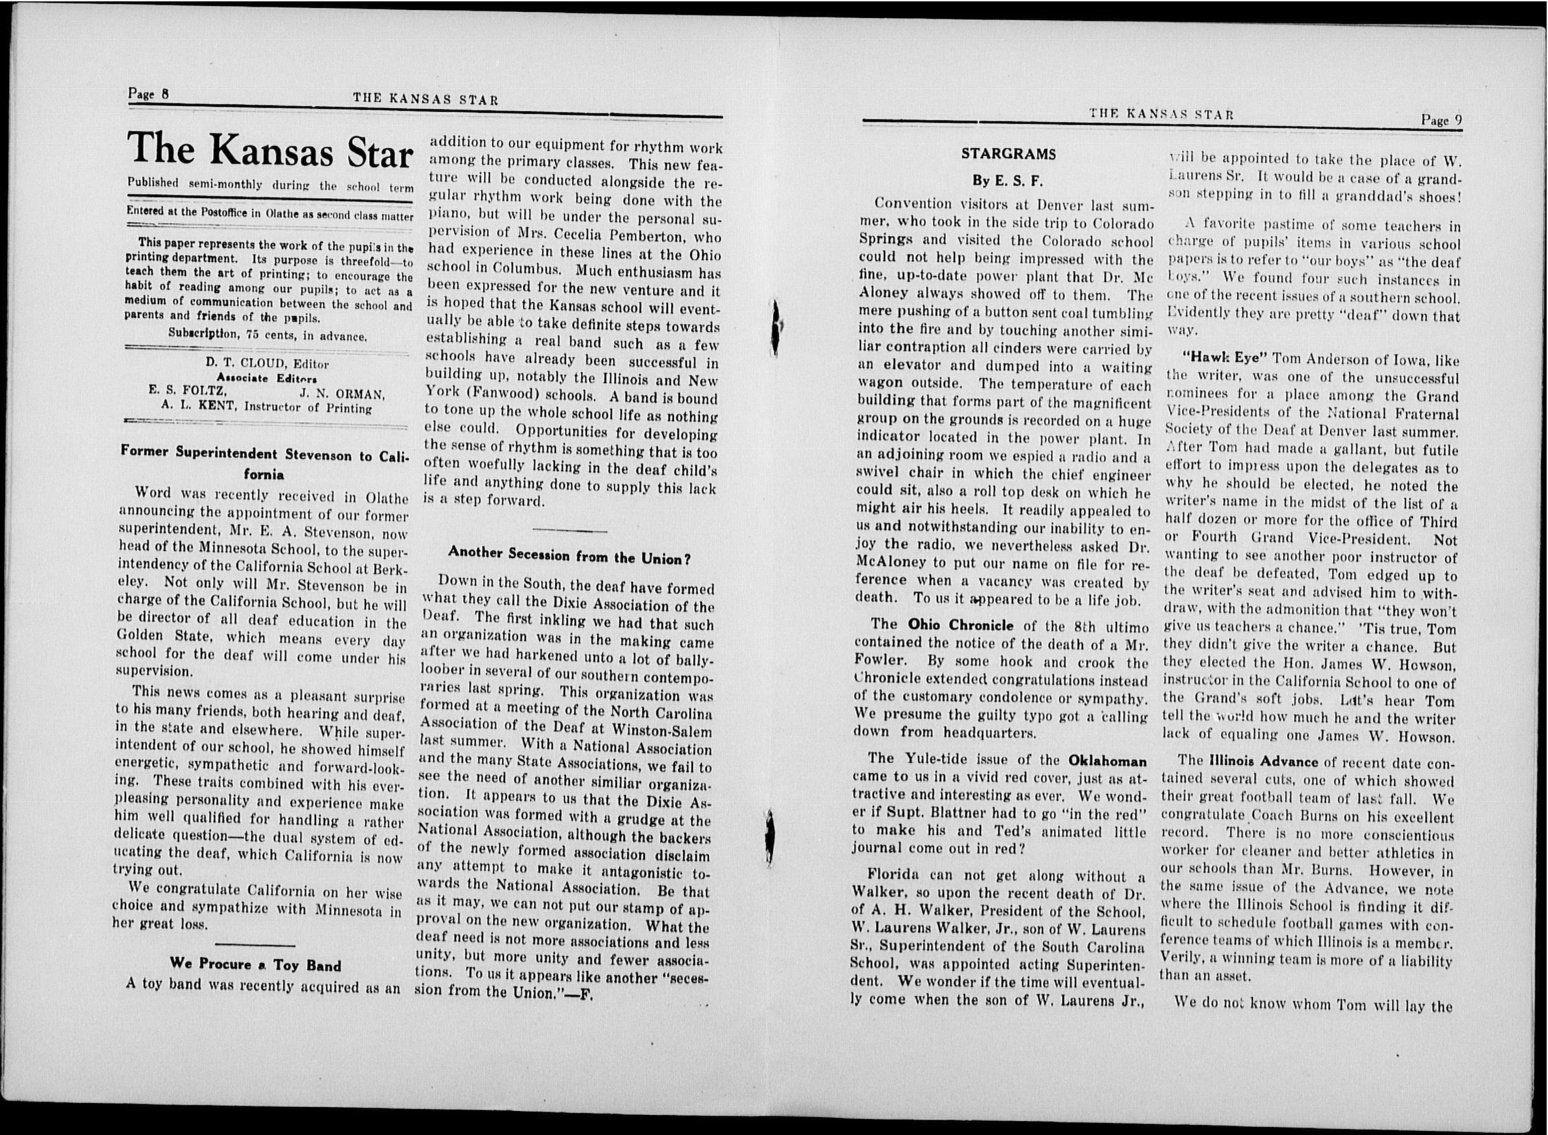 The Kansas Star, volume 51, number 6 - 8-9